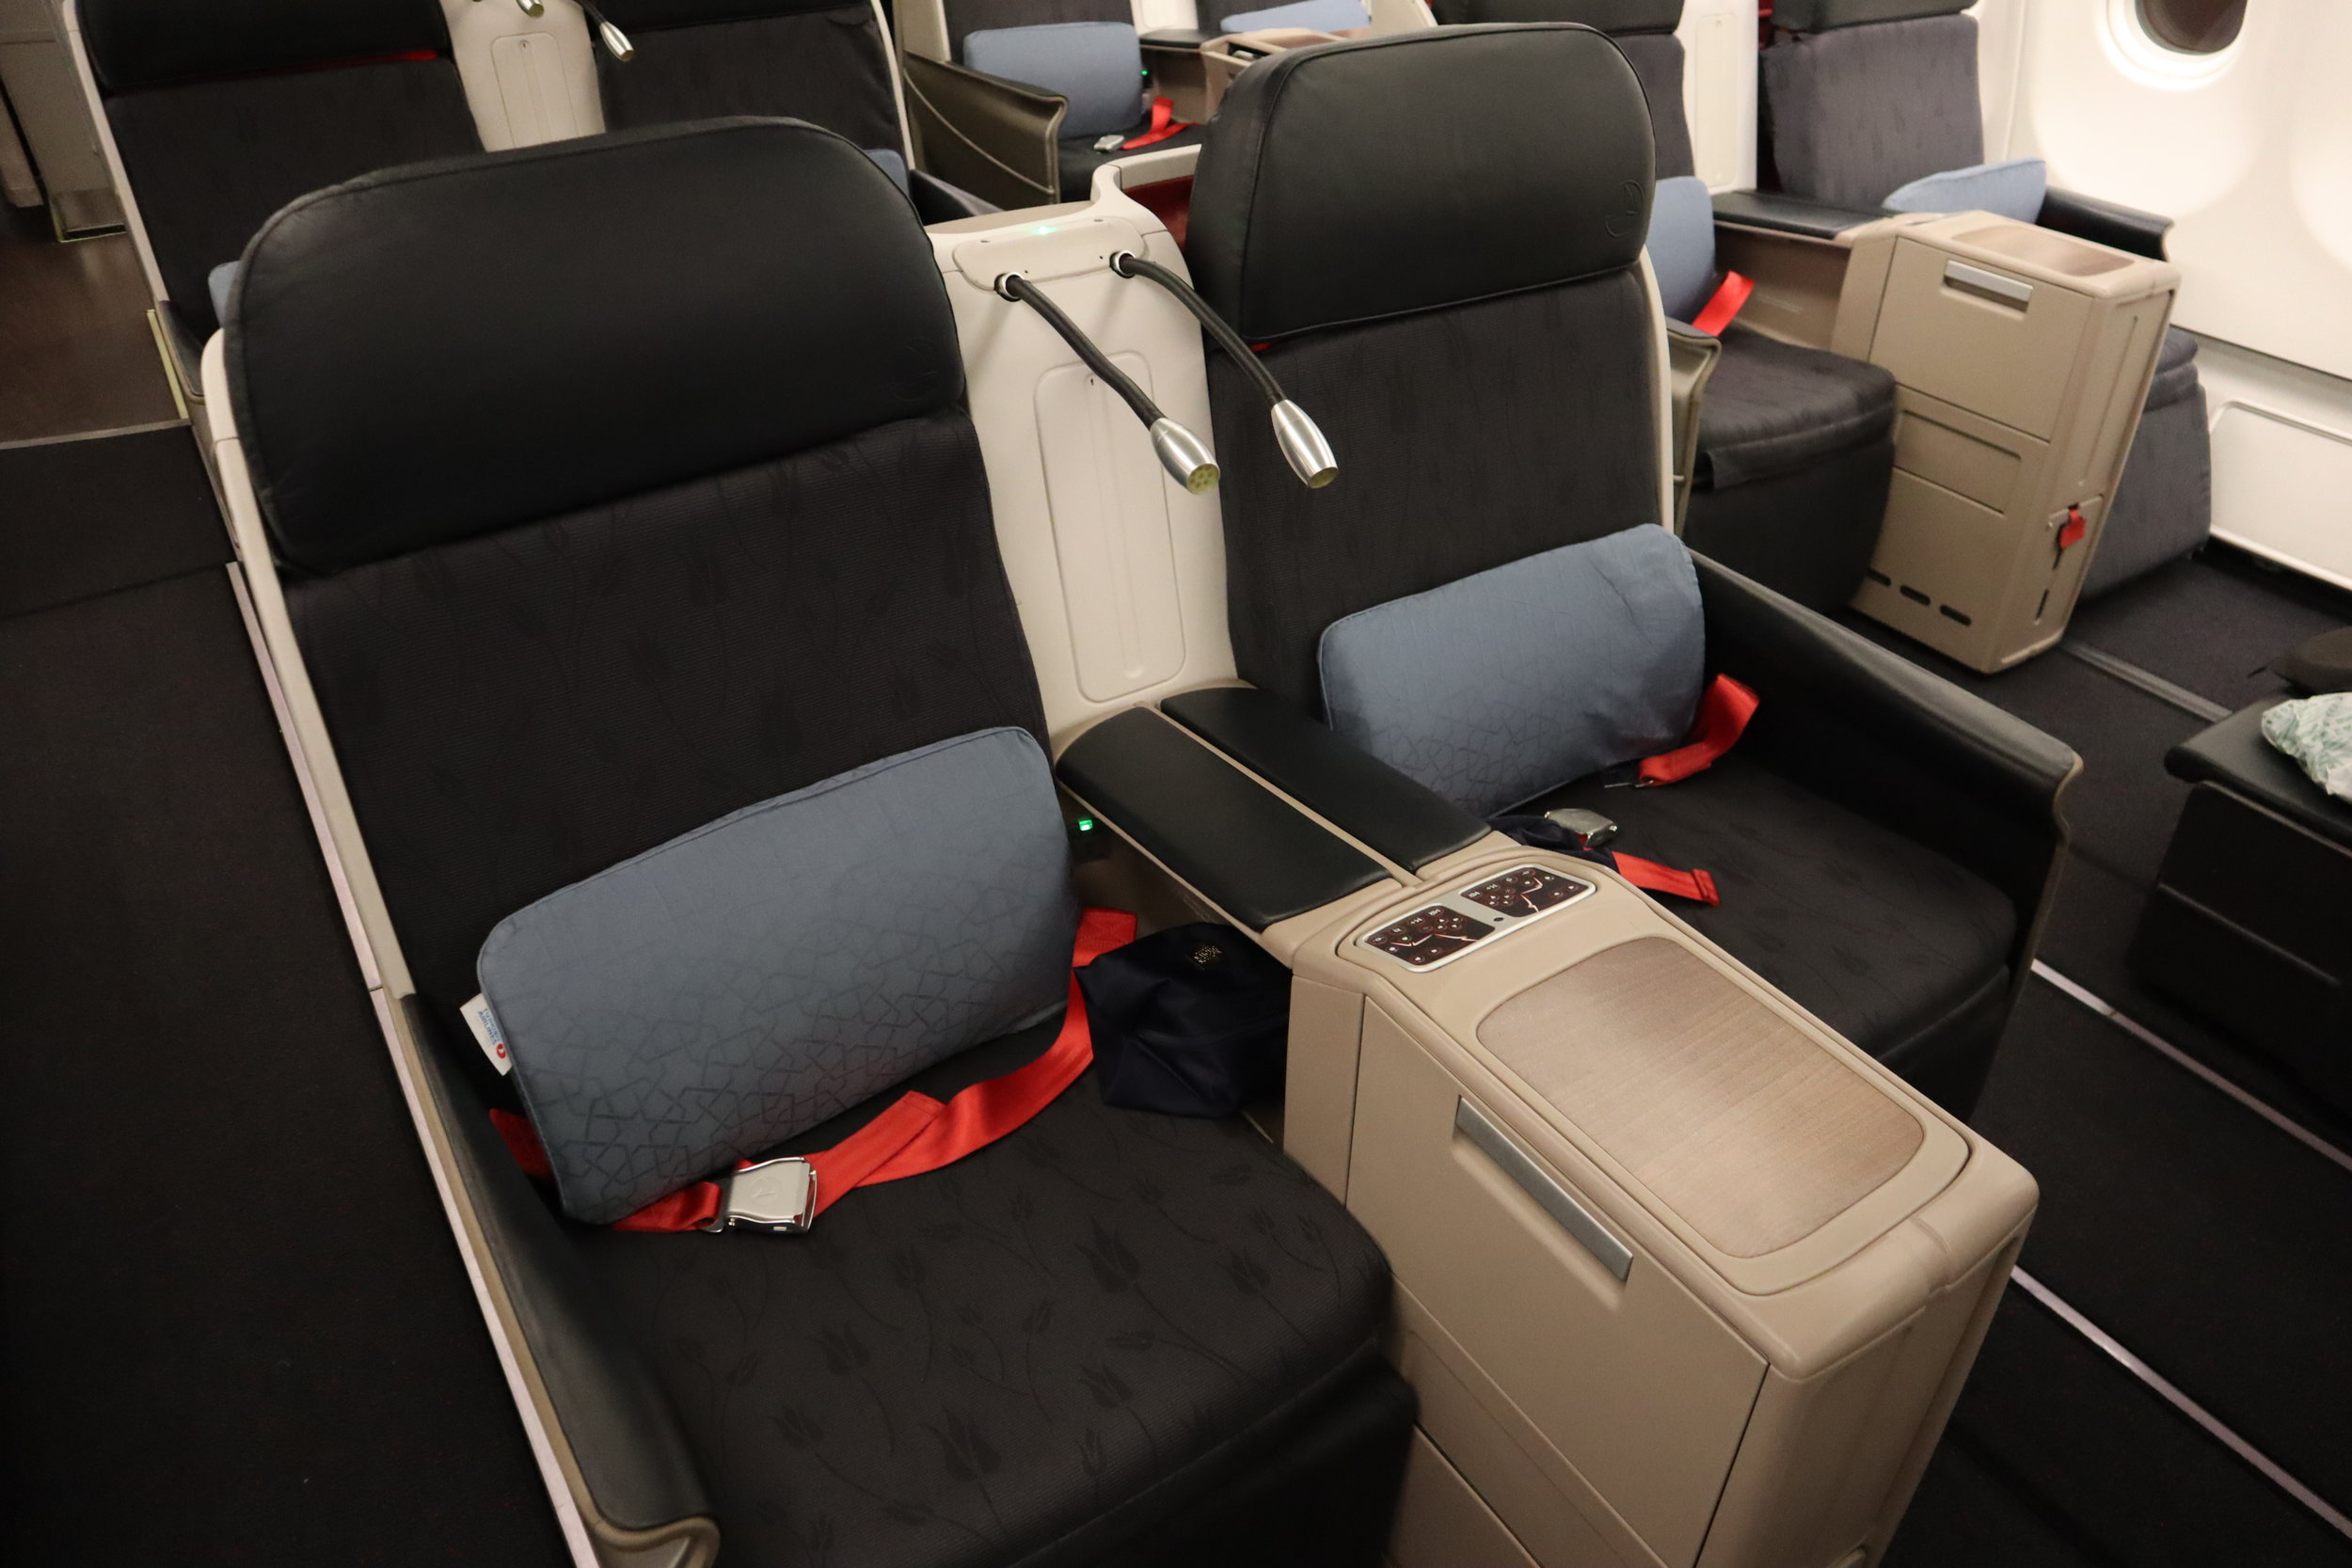 Turkish Airlines A330 business class – Forward-facing seats